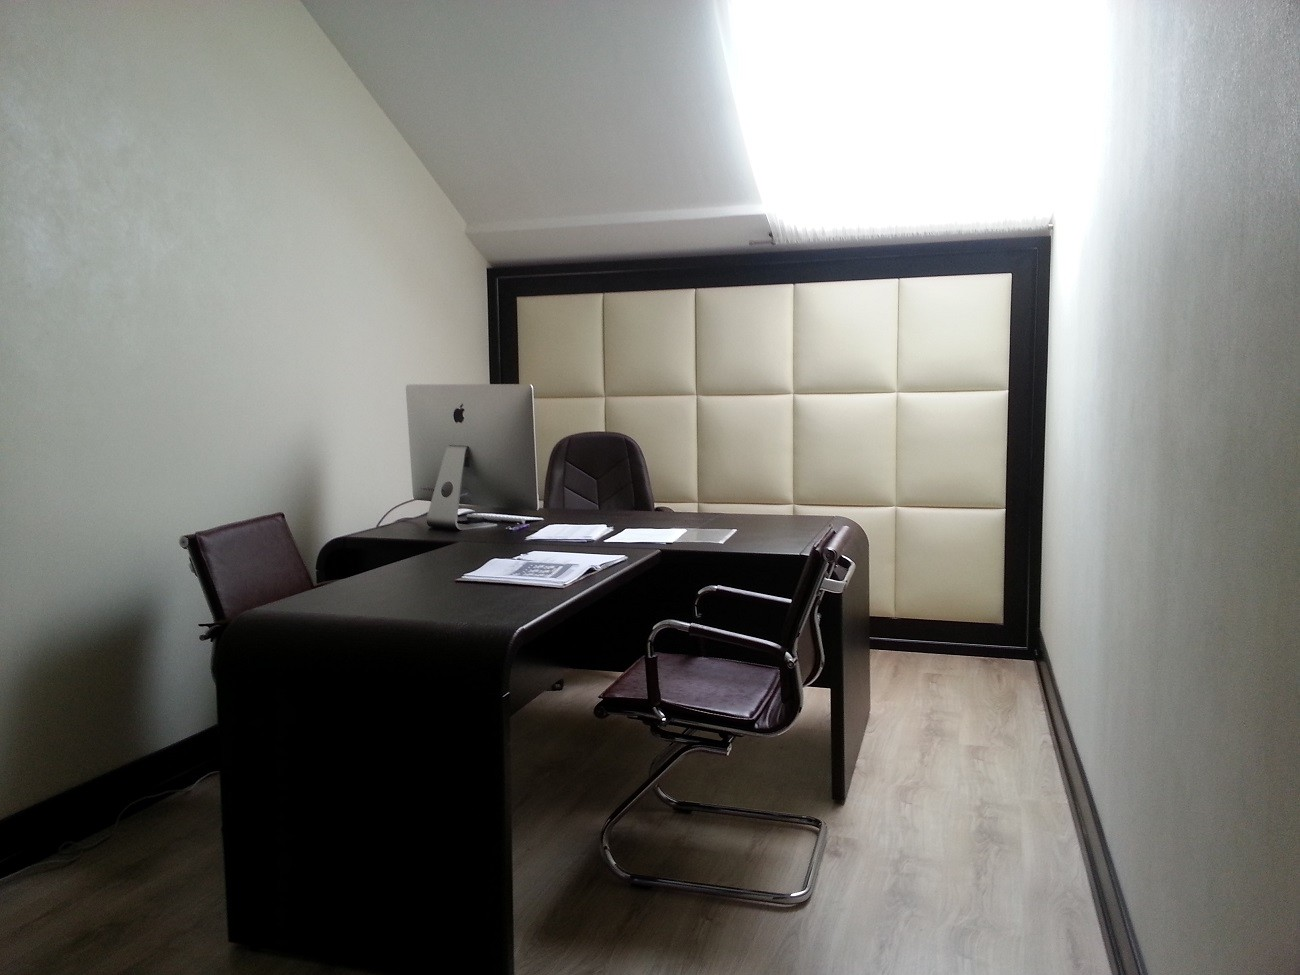 Office_2_StudioMay_View_13_1500